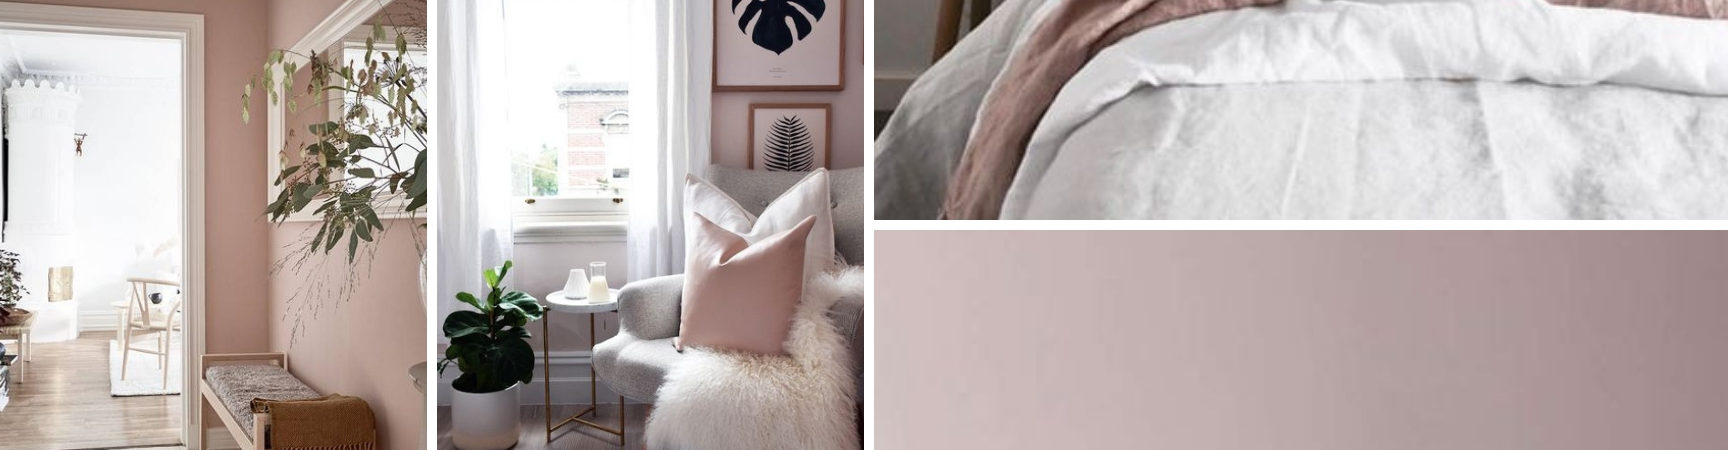 inspo board for blush home design